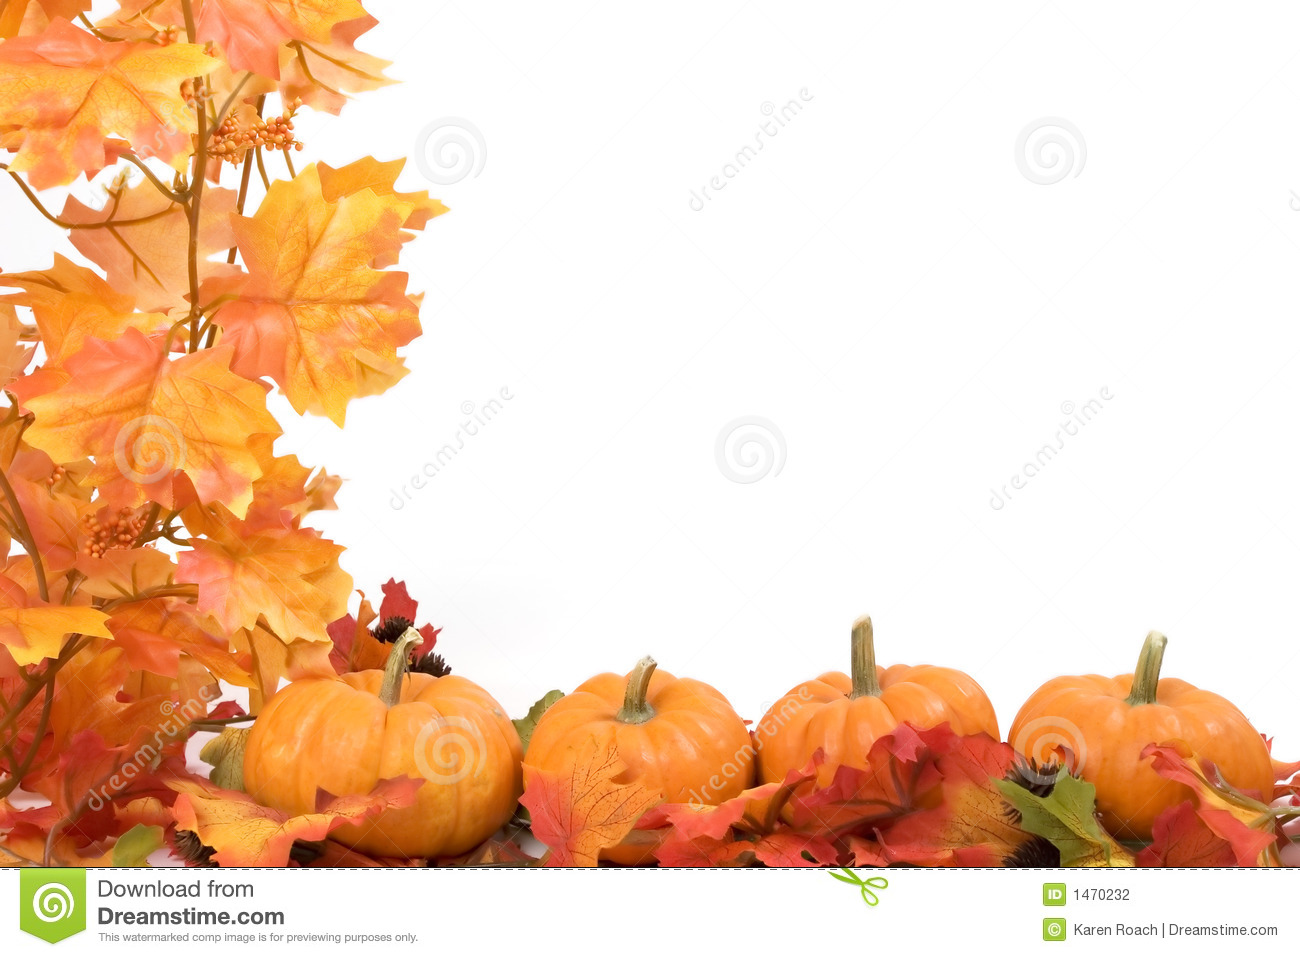 Hd Wallpaper Texture Fall Harvest Pumpkins With Fall Leaves Stock Photo Image Of